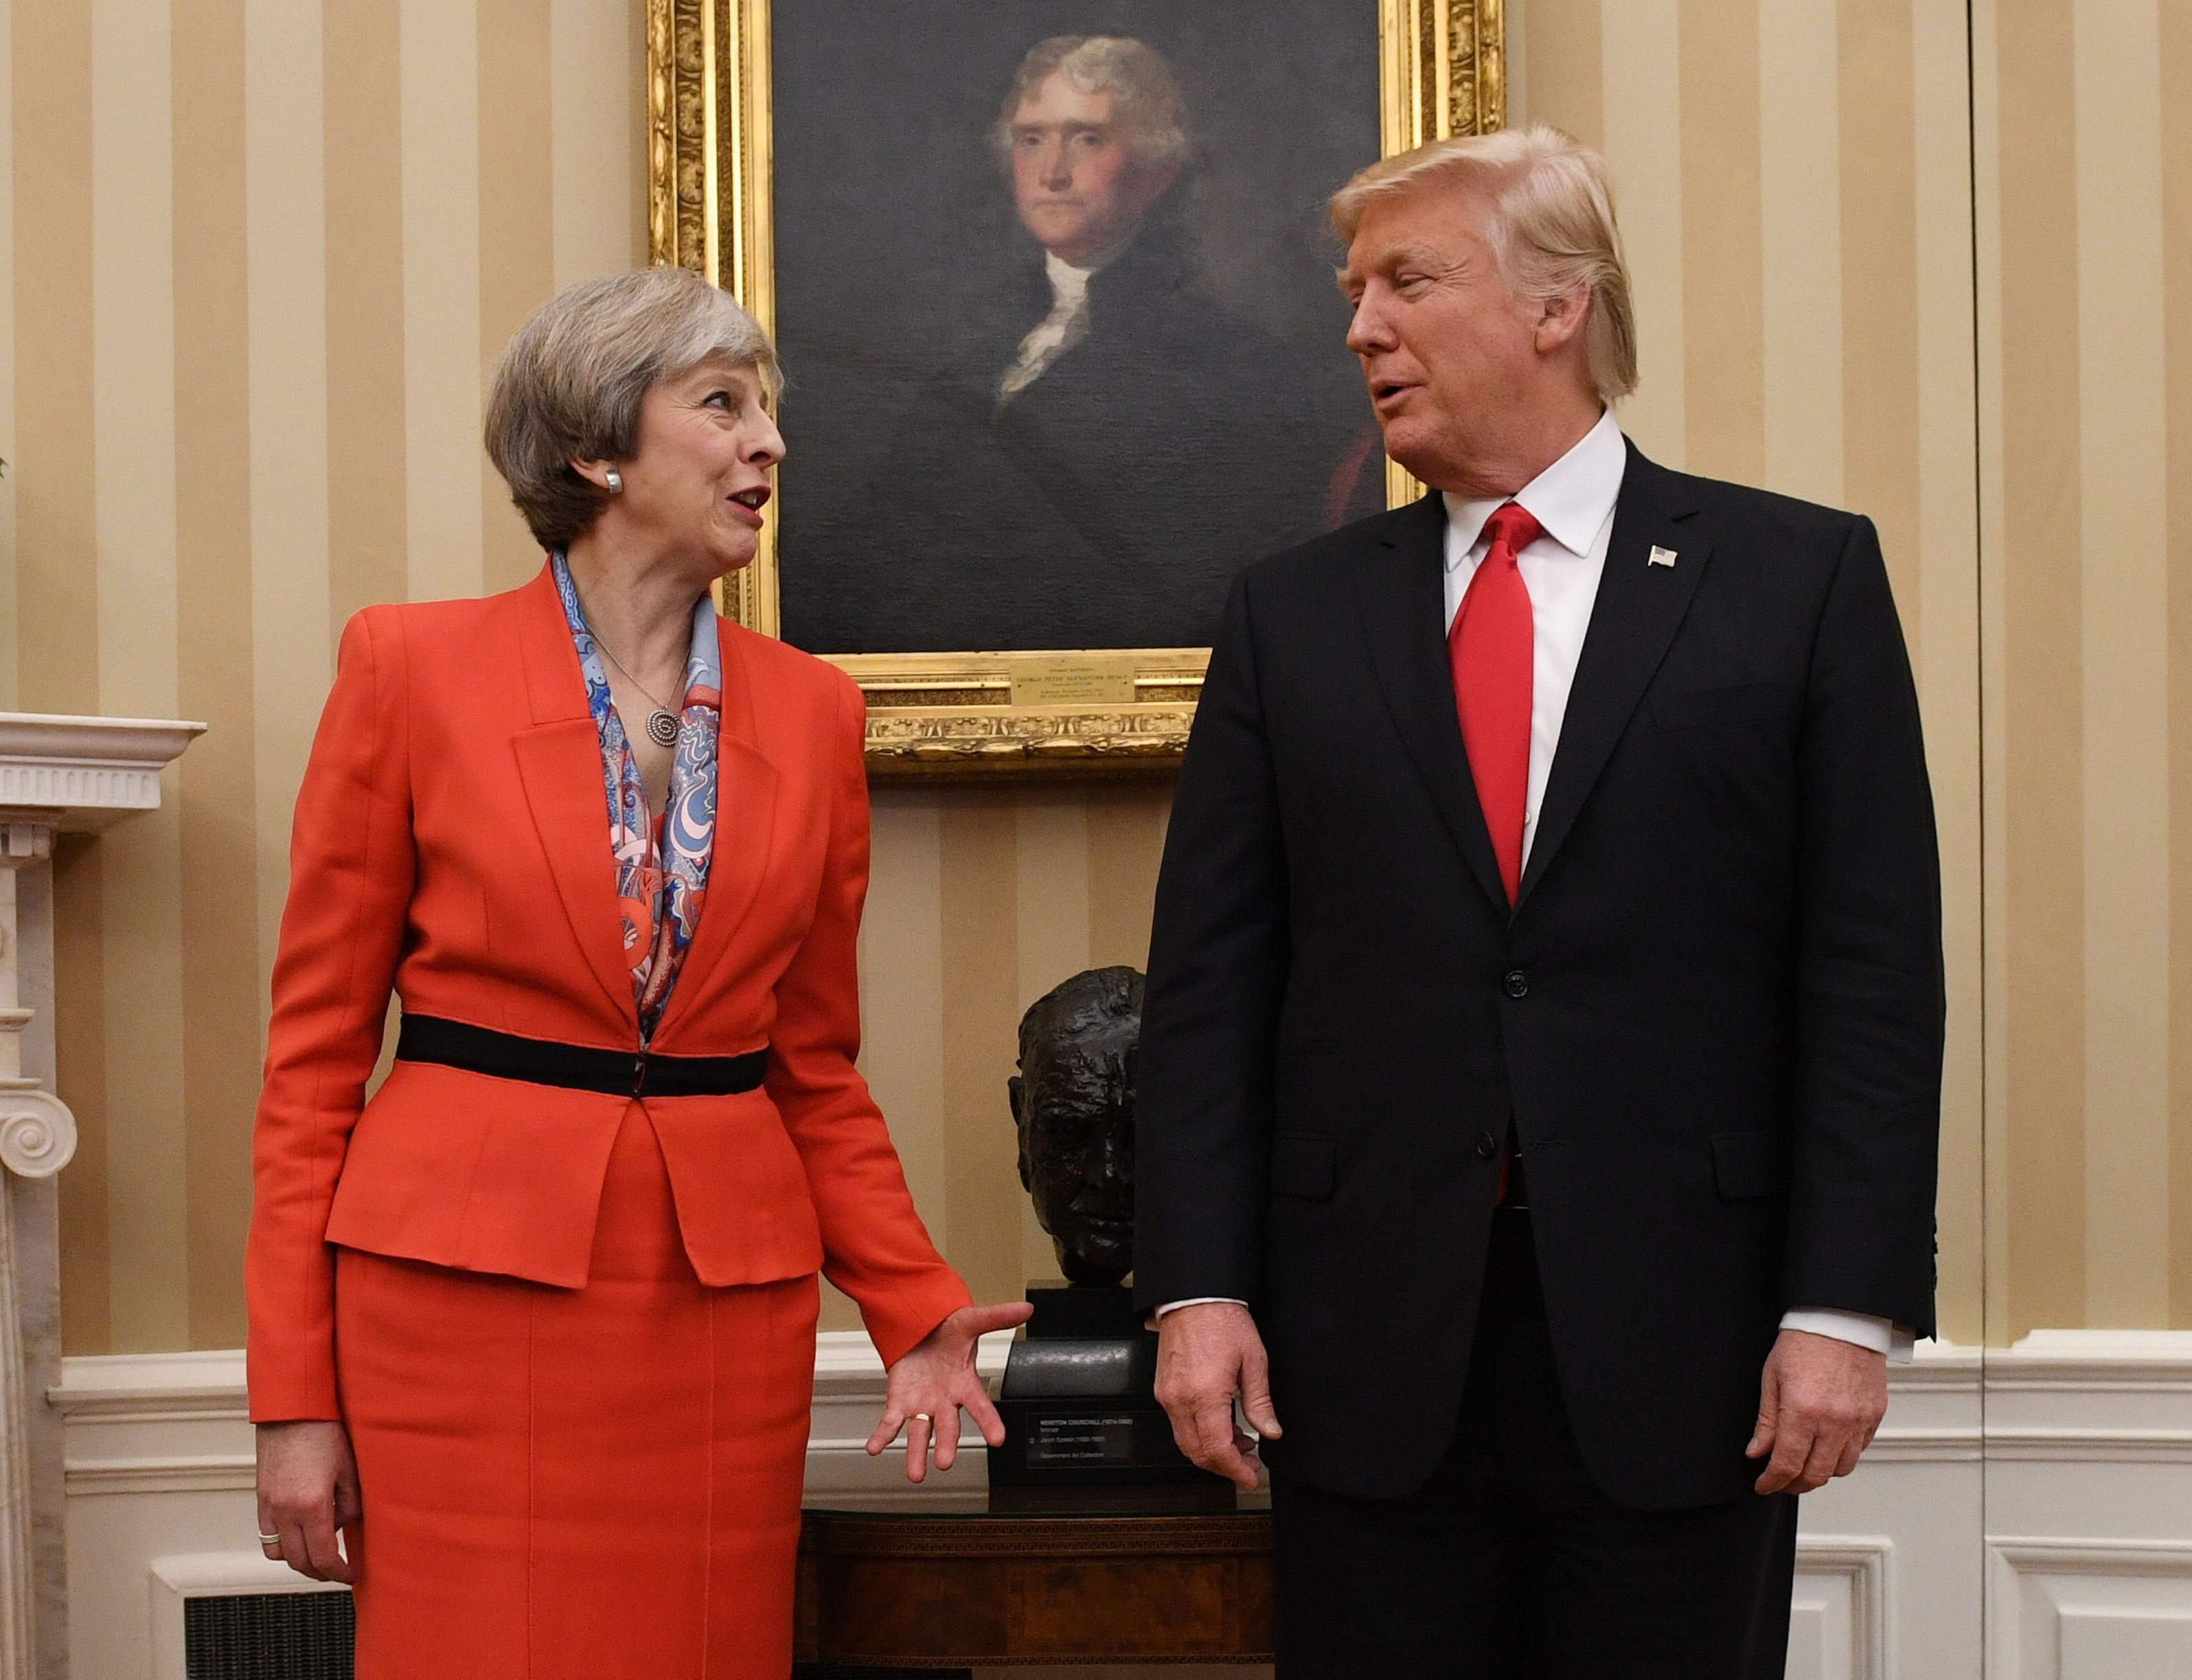 Trump To Make Downgraded Visit To Britain In Early 2018